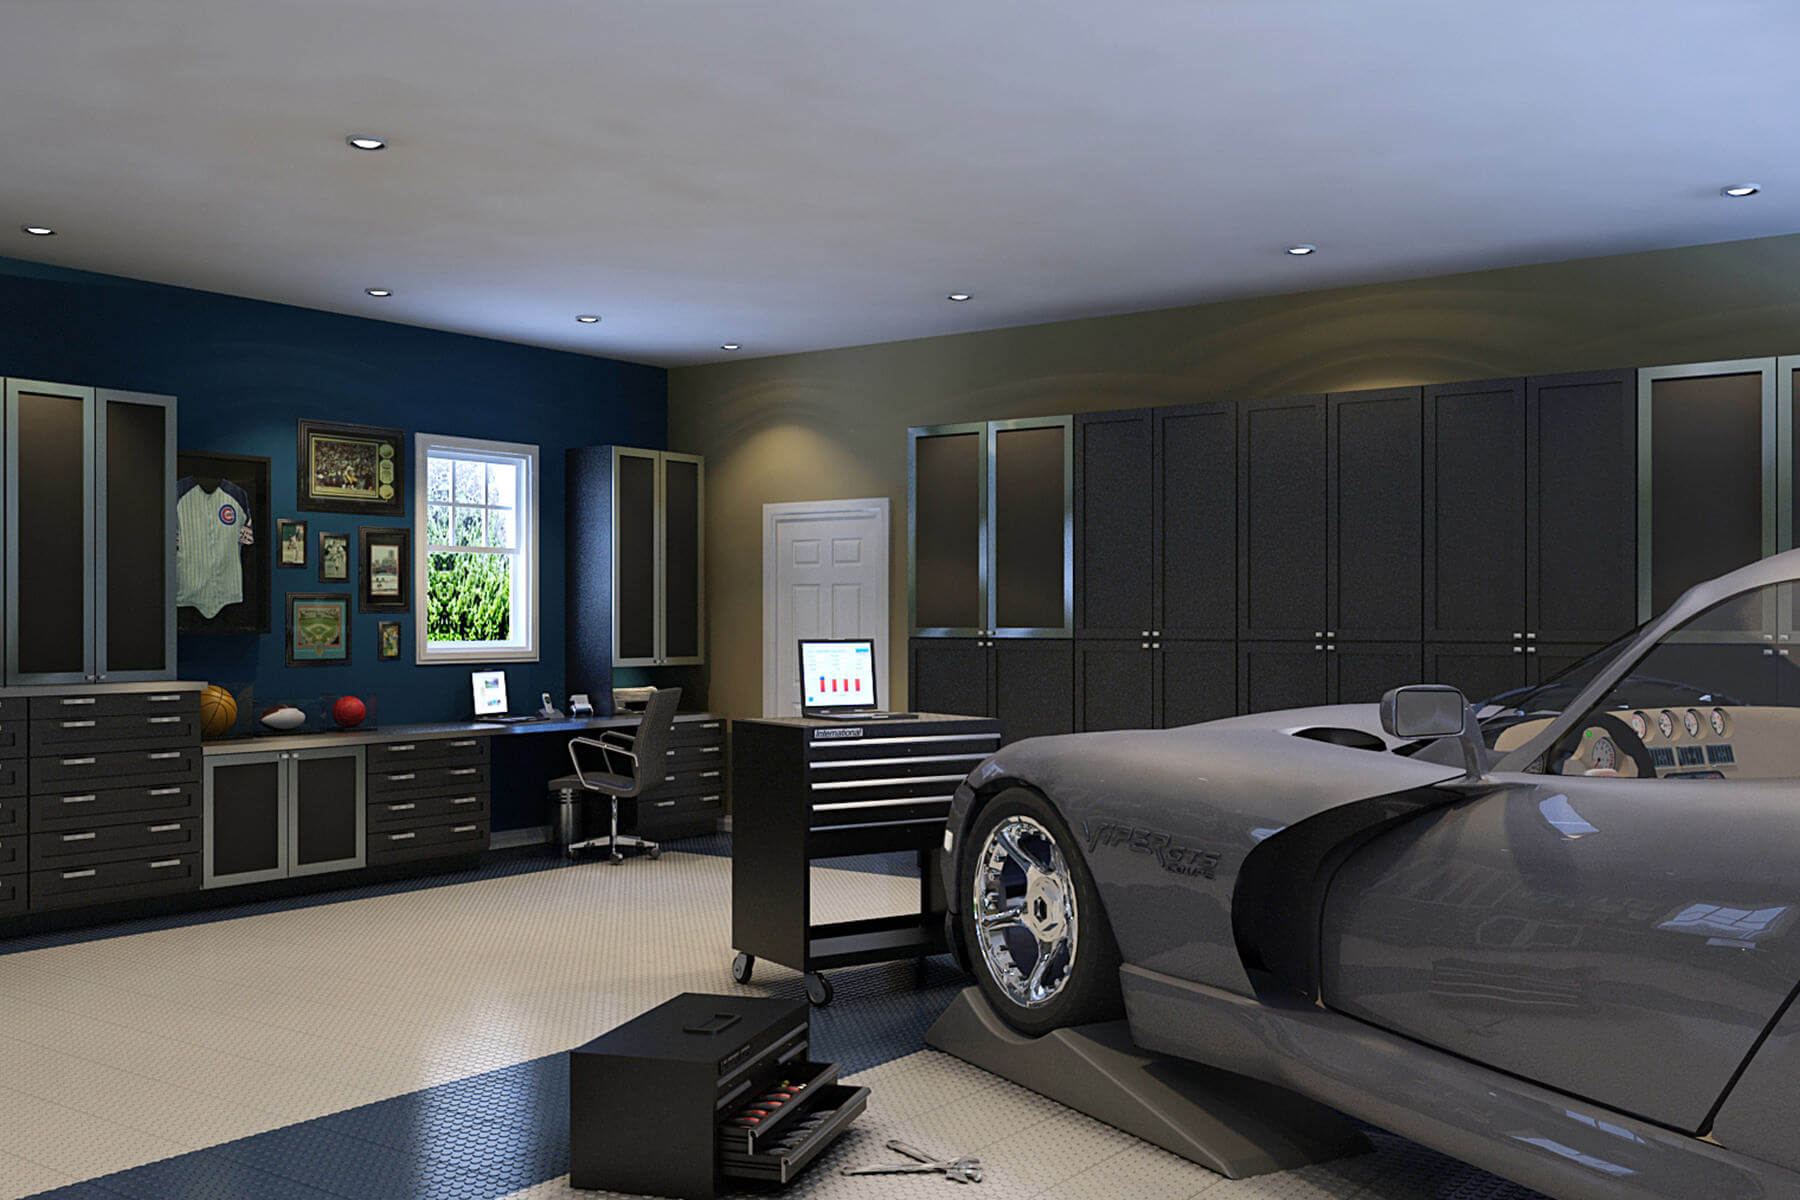 Easily A Man Cave, This Masculine Elegant Garage Is Designed In Silver And  Black And Made Of Completely Waterproof Resin. Cabinet Doors And Drawers  Are ...